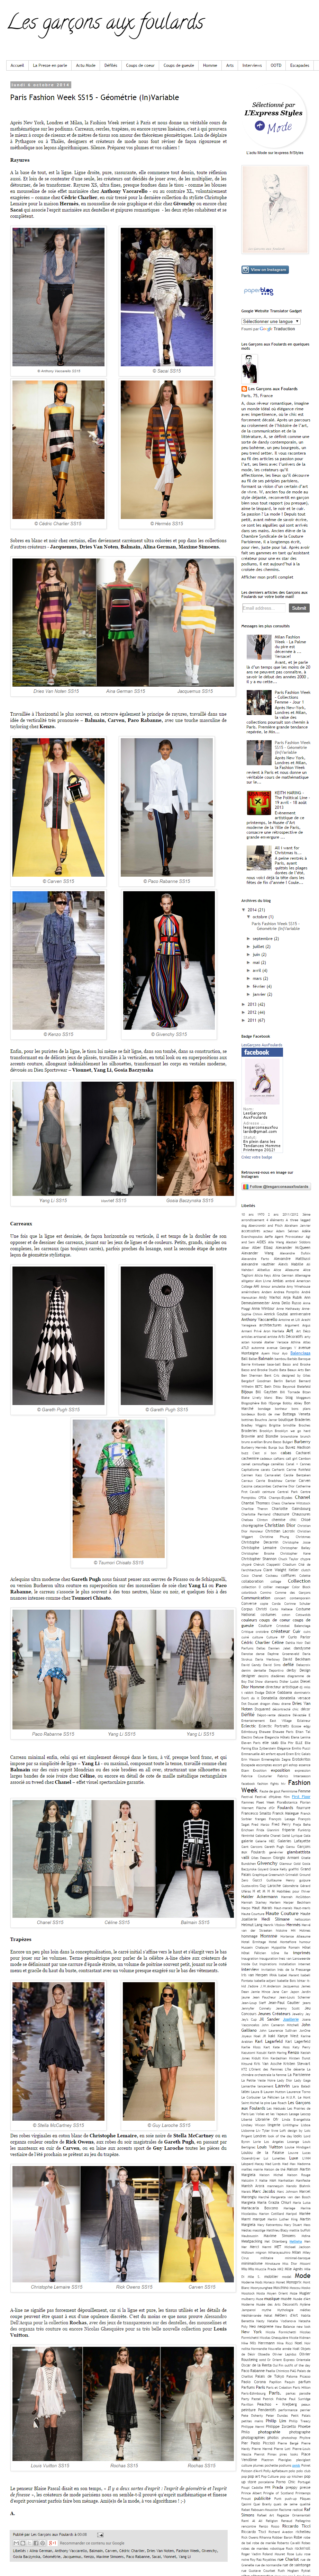 Les gar__ons aux foulards  Paris Fashion Week SS15 ___ G__om__trie  In Variable.png